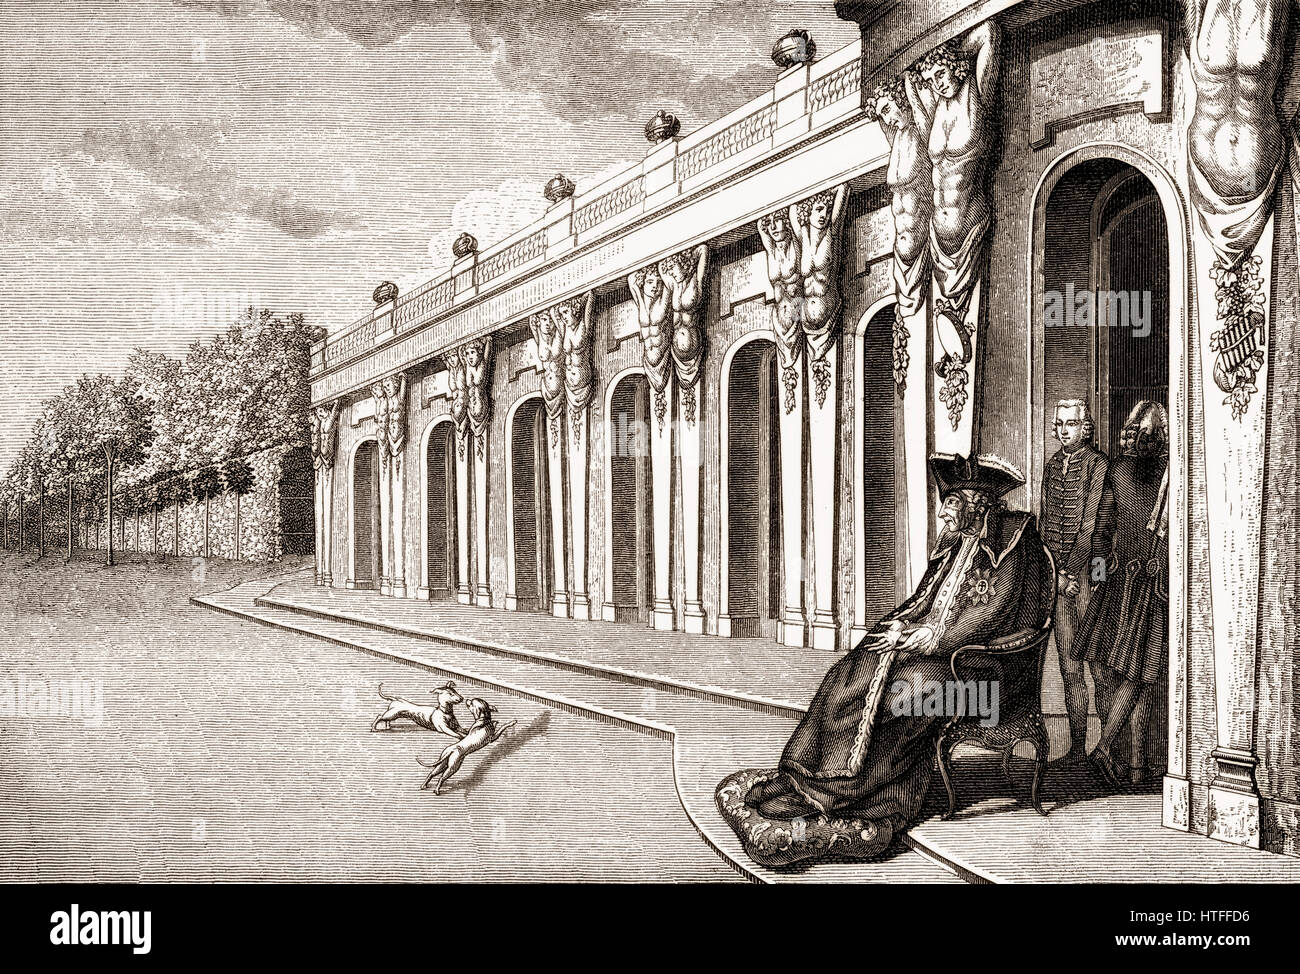 Frederick II or Frederick the Great, 1712-1786, King of Prussia in his last days on the terrace of Sanssouci Palace, - Stock Image